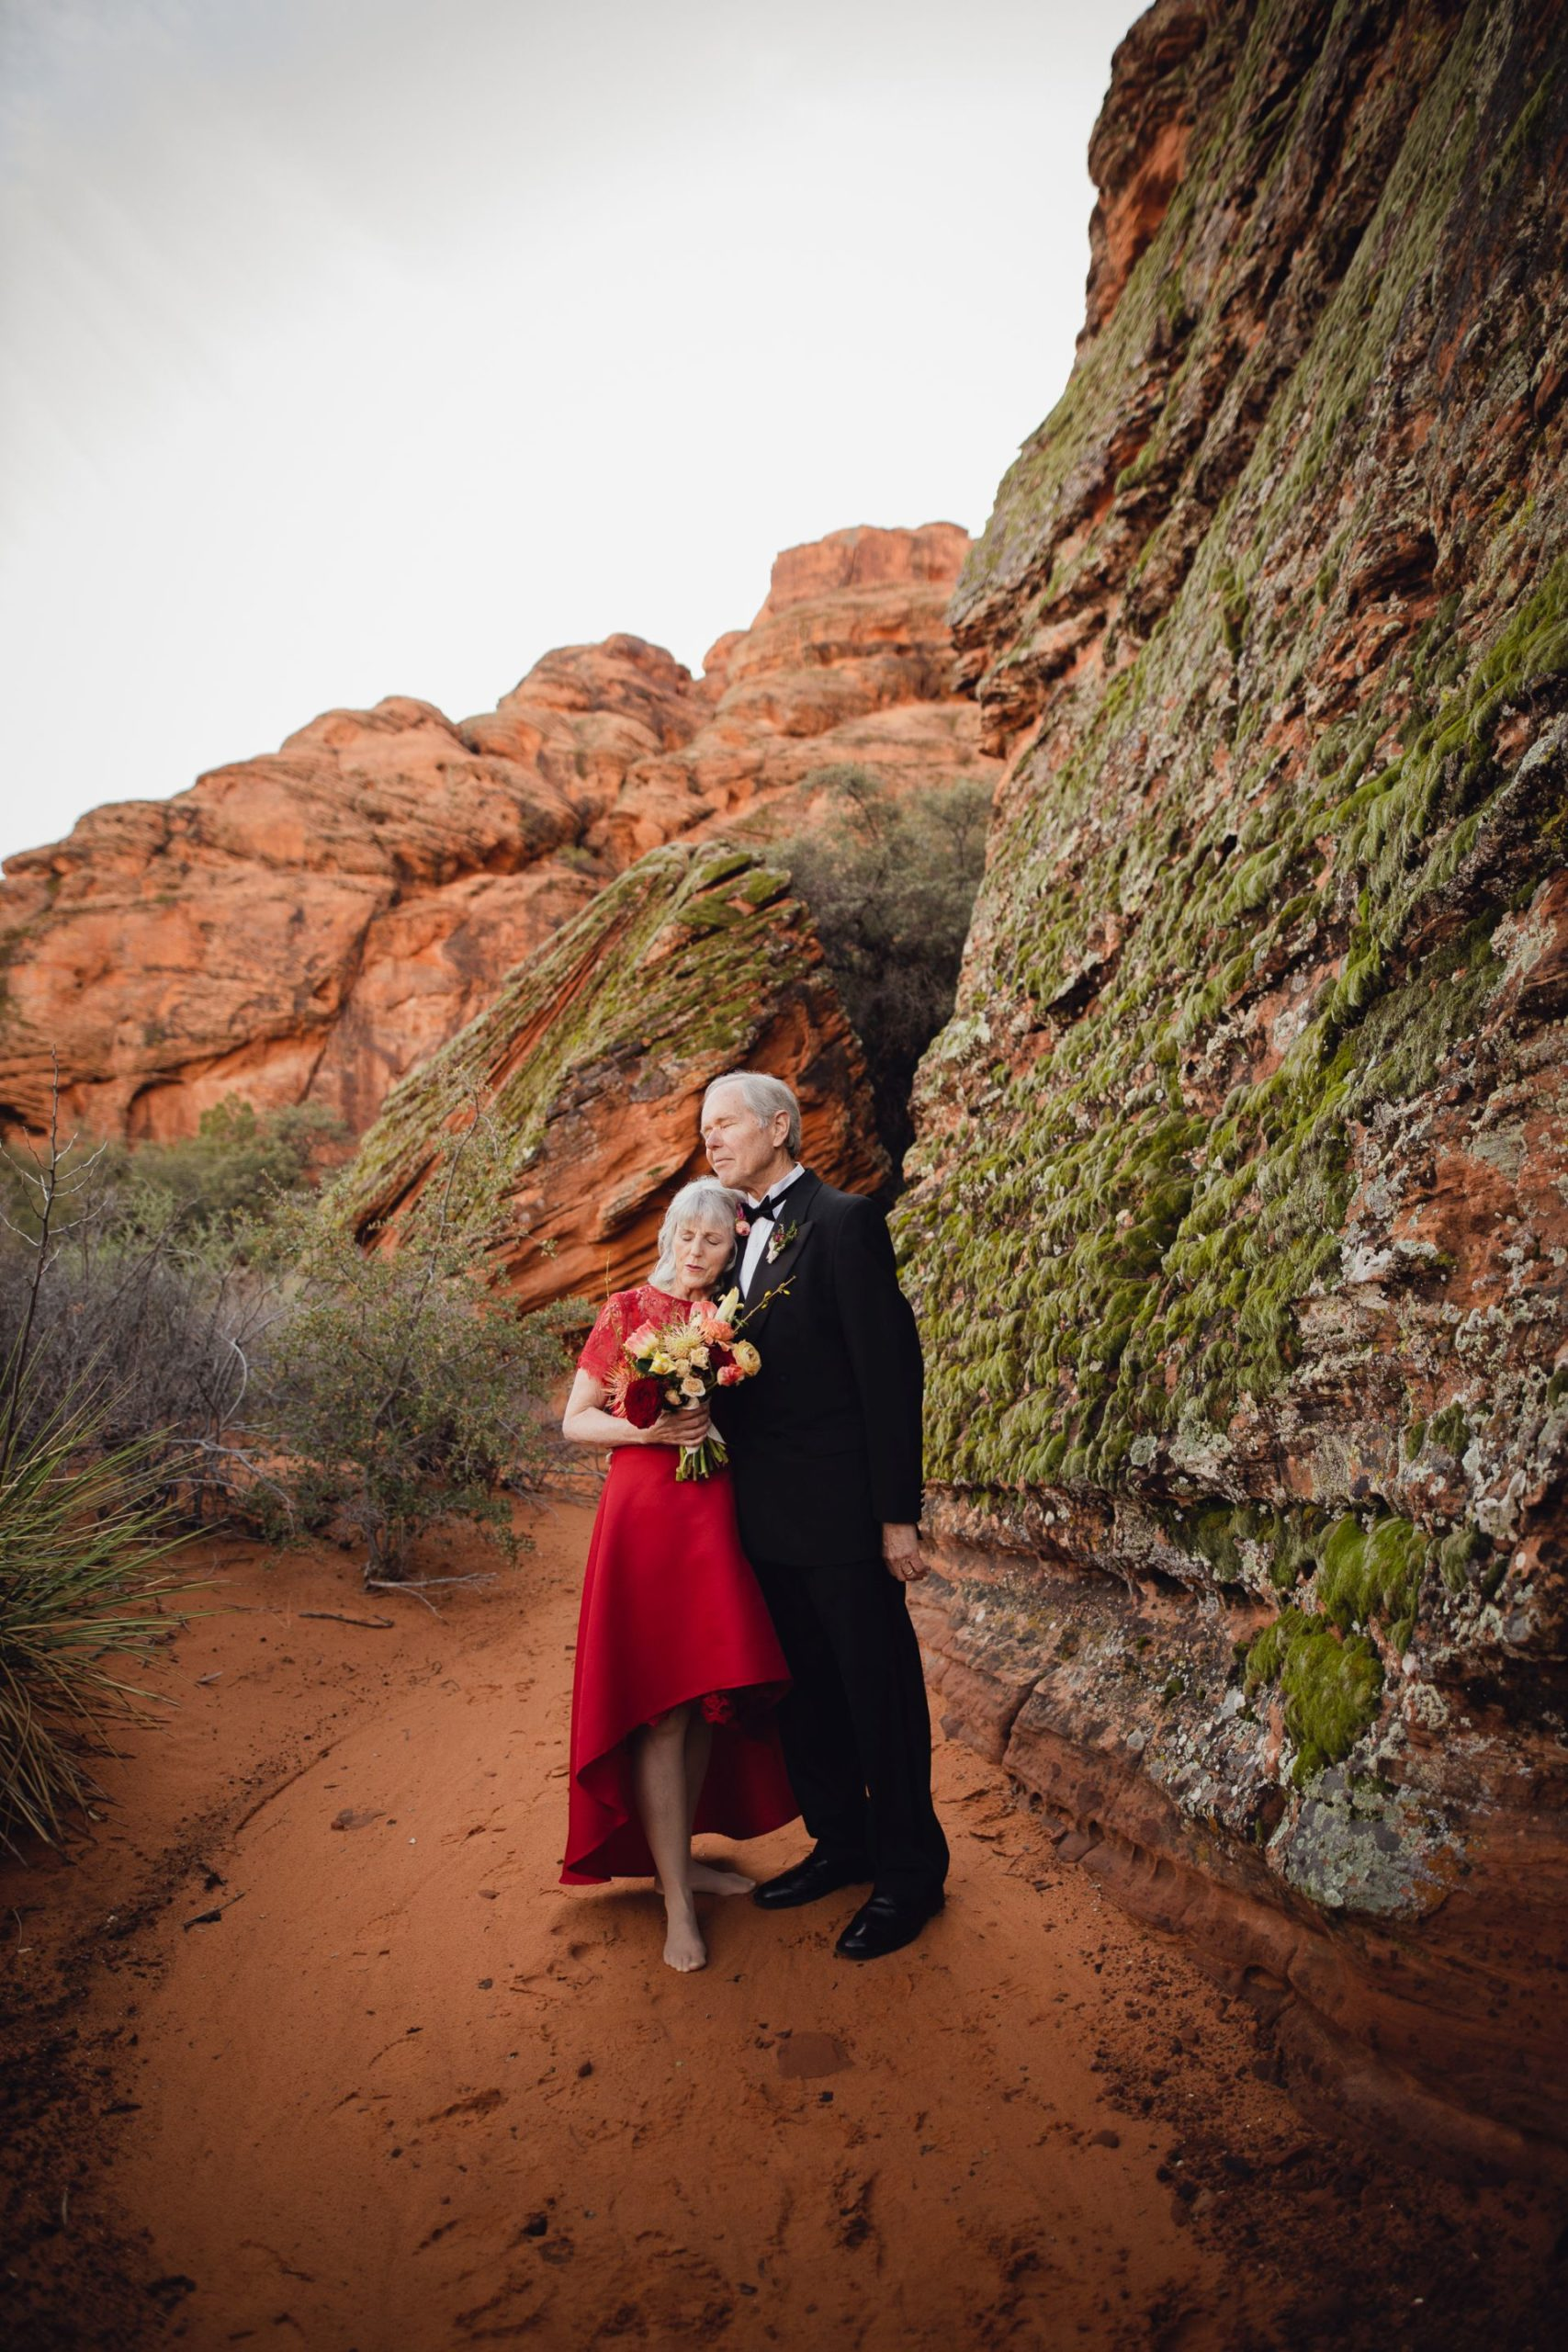 adventure wedding desert utah - couple in intimate hug during their elopement